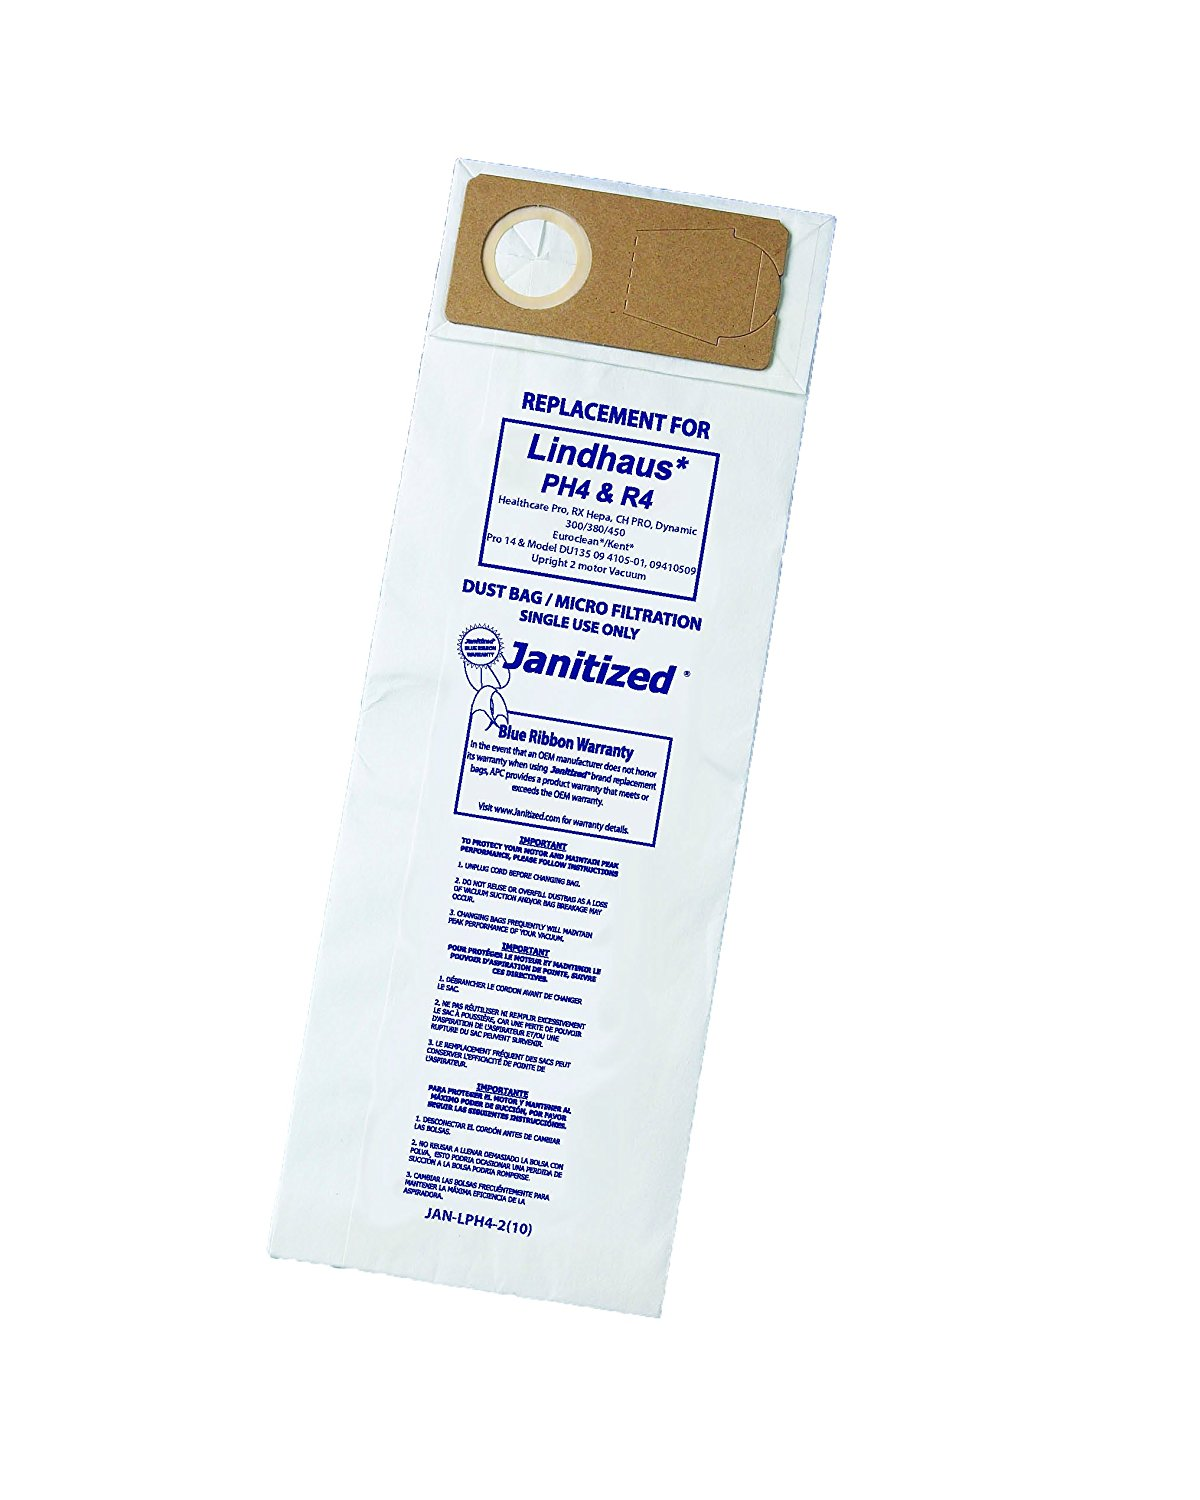 Janitized JAN-LPH4-2(10)Premium Replacement Commercial Vac Bag, Lindhaus Pro, Dynamic 300/380/450, OEM#PH4, R4, 141299001, 141296200 (Pack of 10)